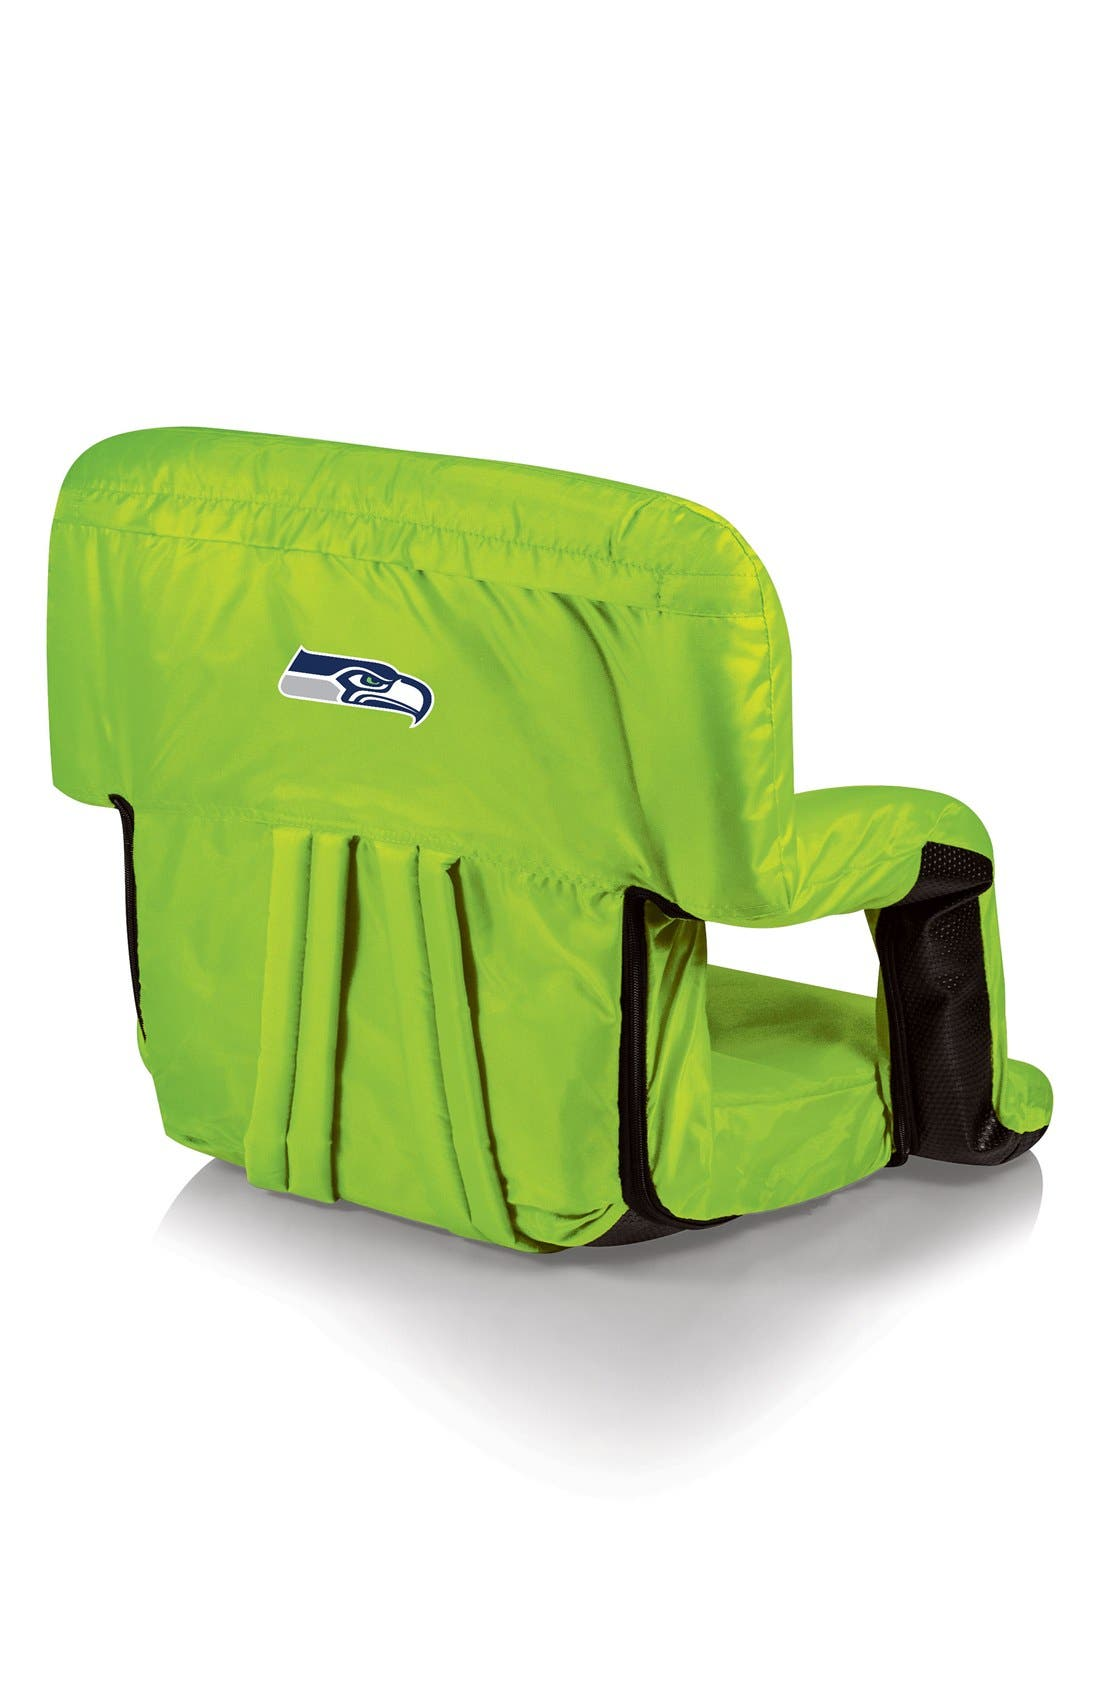 'Ventura' Football Print Stadium Seat,                         Main,                         color, Seattle Seahawks - Lime